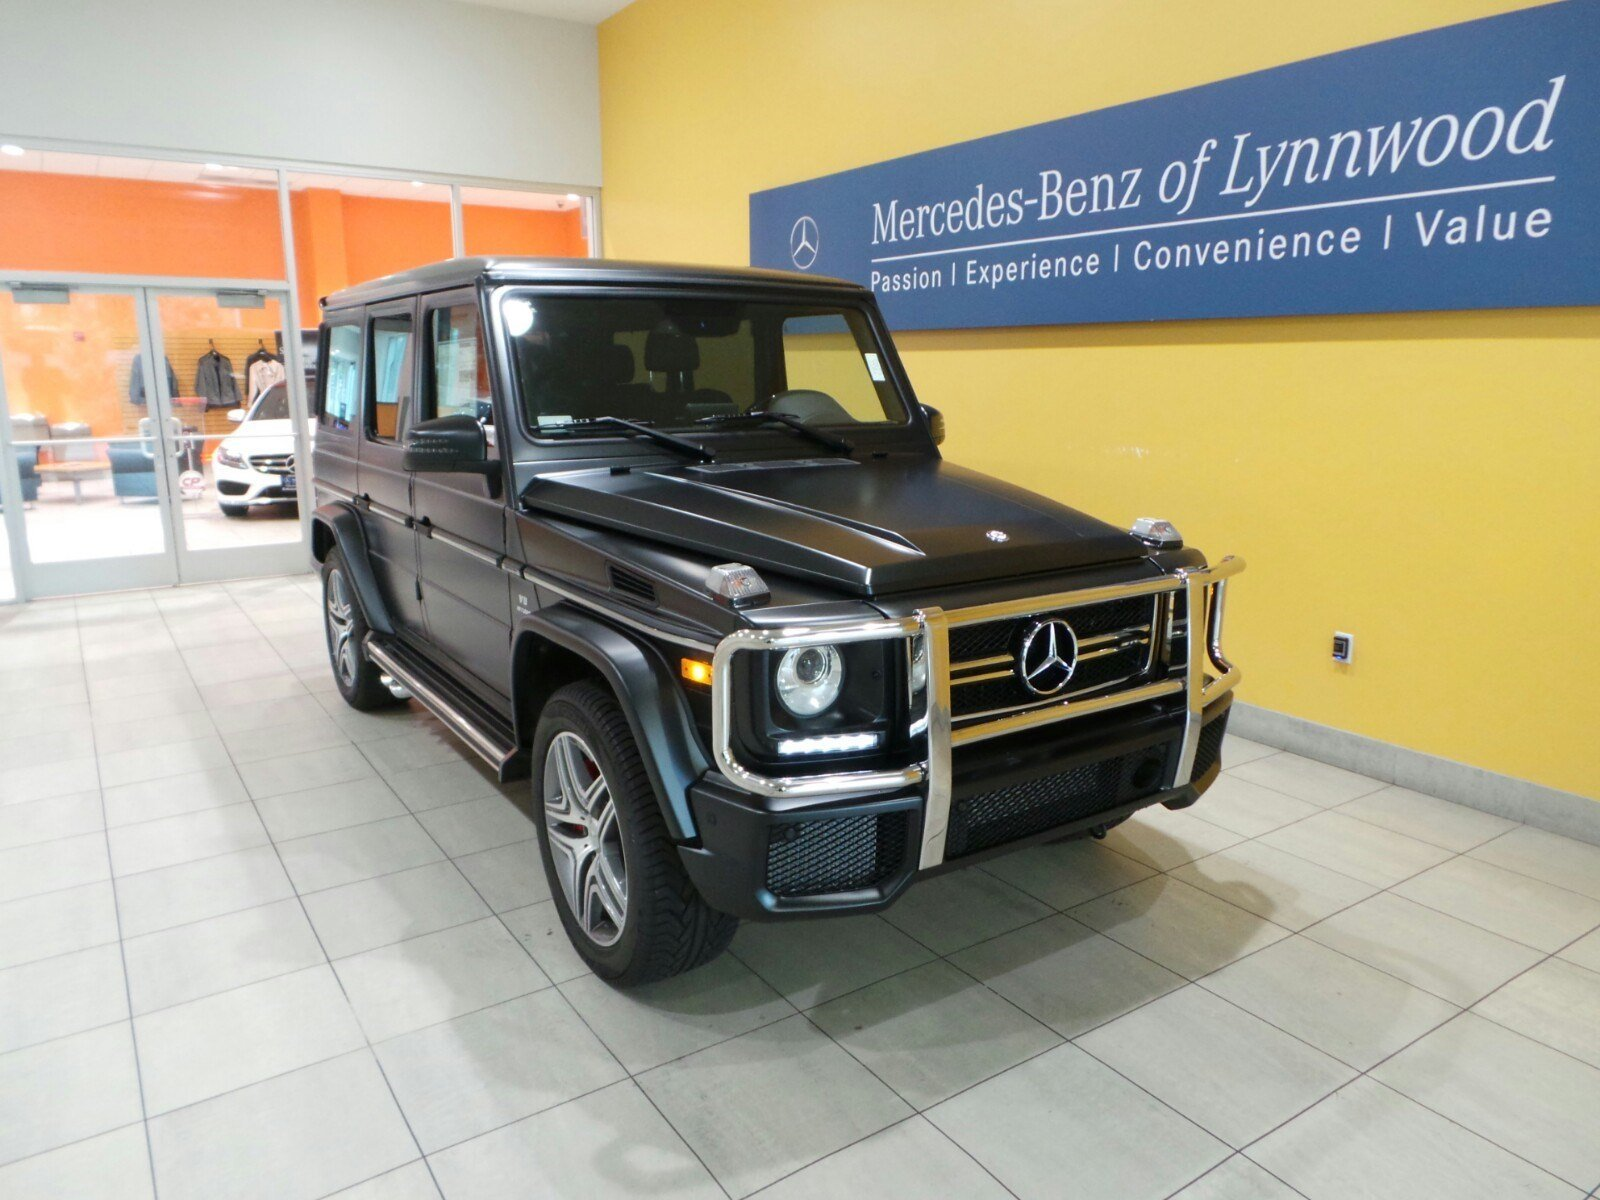 New 2017 mercedes benz g class amg g63 4matic suv in for 2017 mercedes benz g class msrp